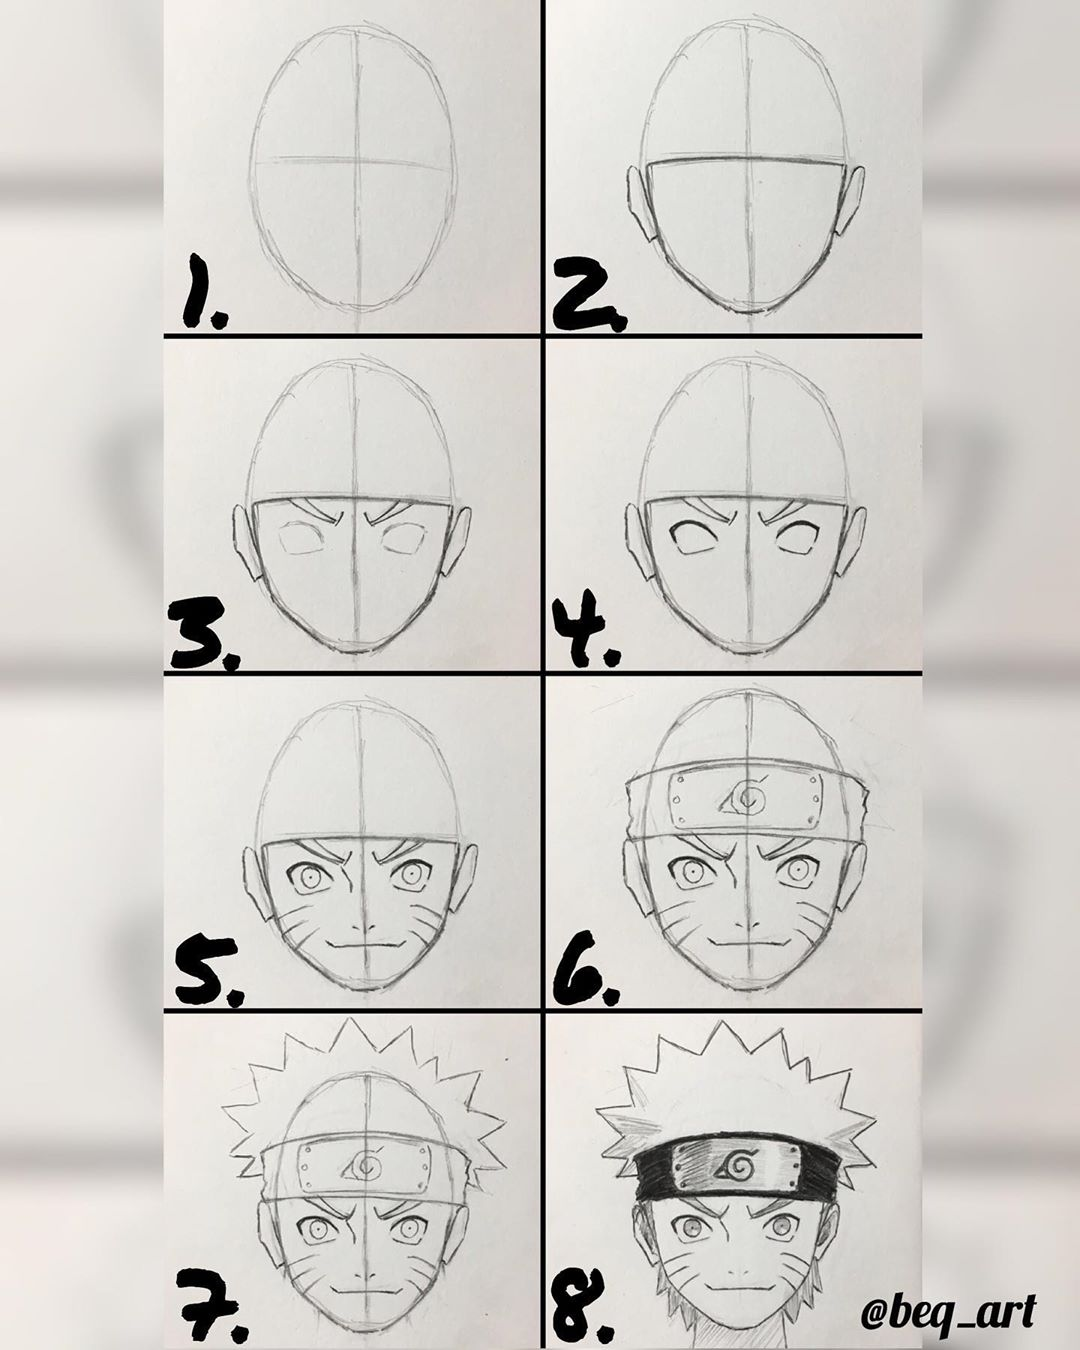 naruto drawings in pencil step by step for beginners